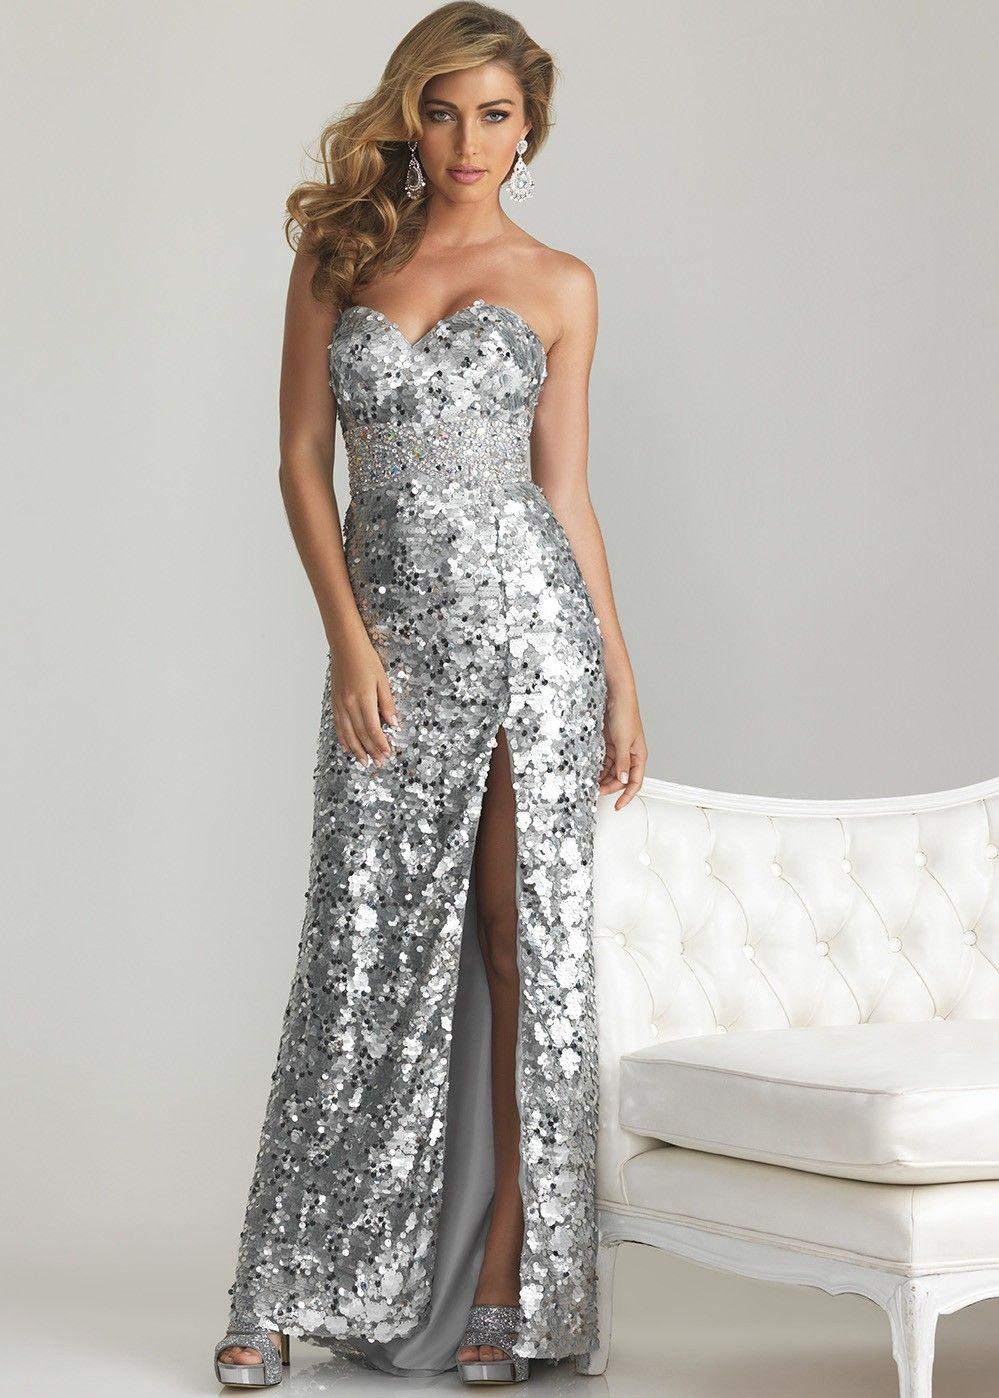 10  images about Sparkly Prom Dresses on Pinterest  Beaded prom ...